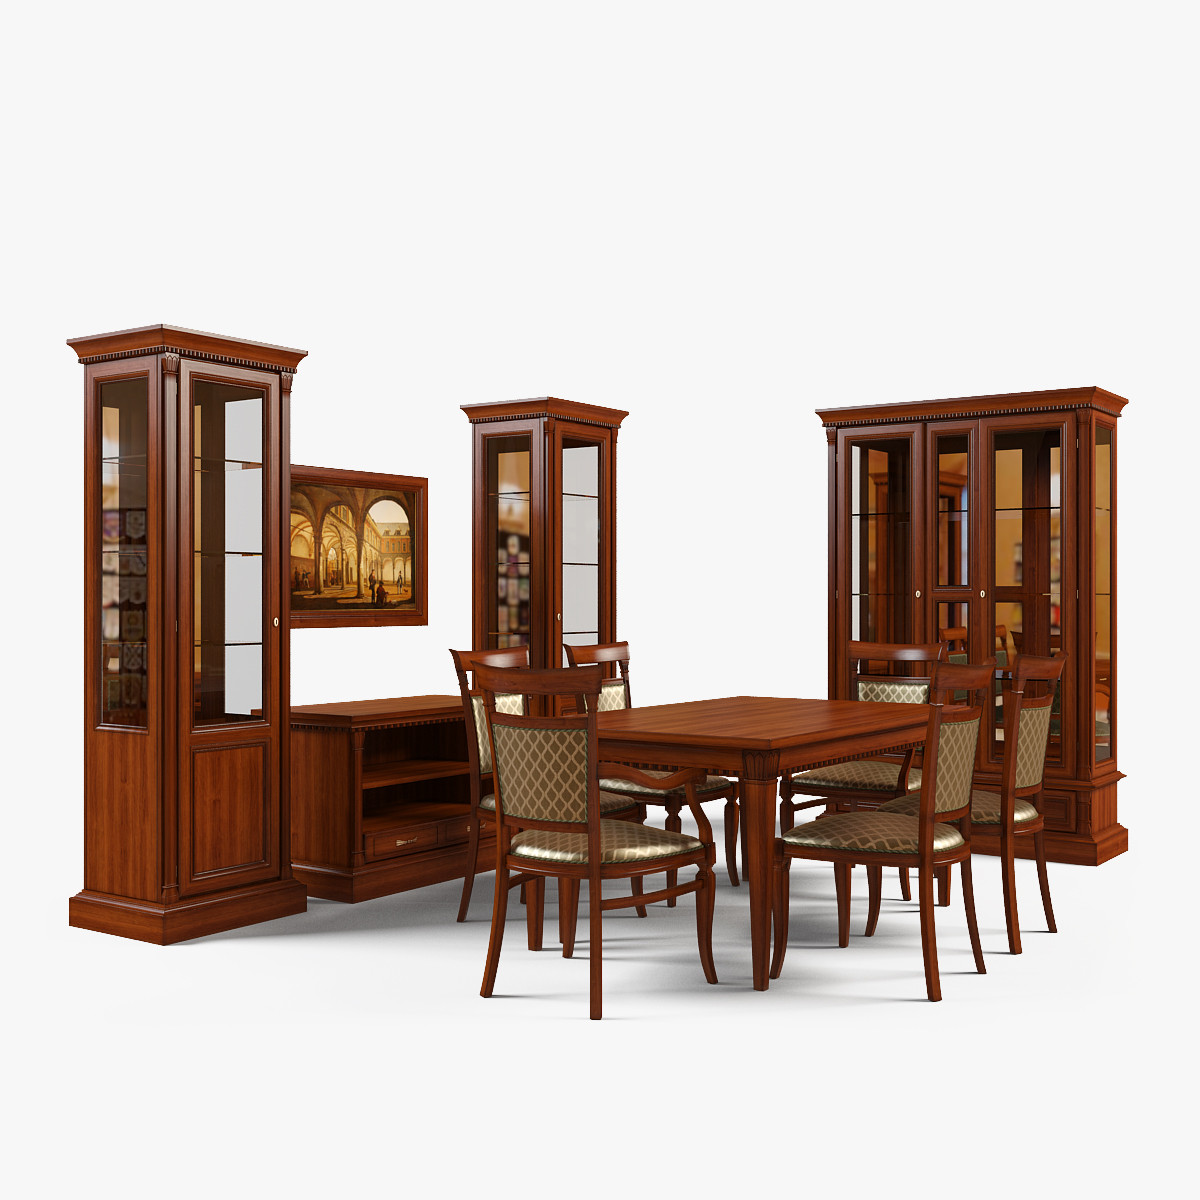 pr_dining room furniture_Florida - Venezia3_1.jpg